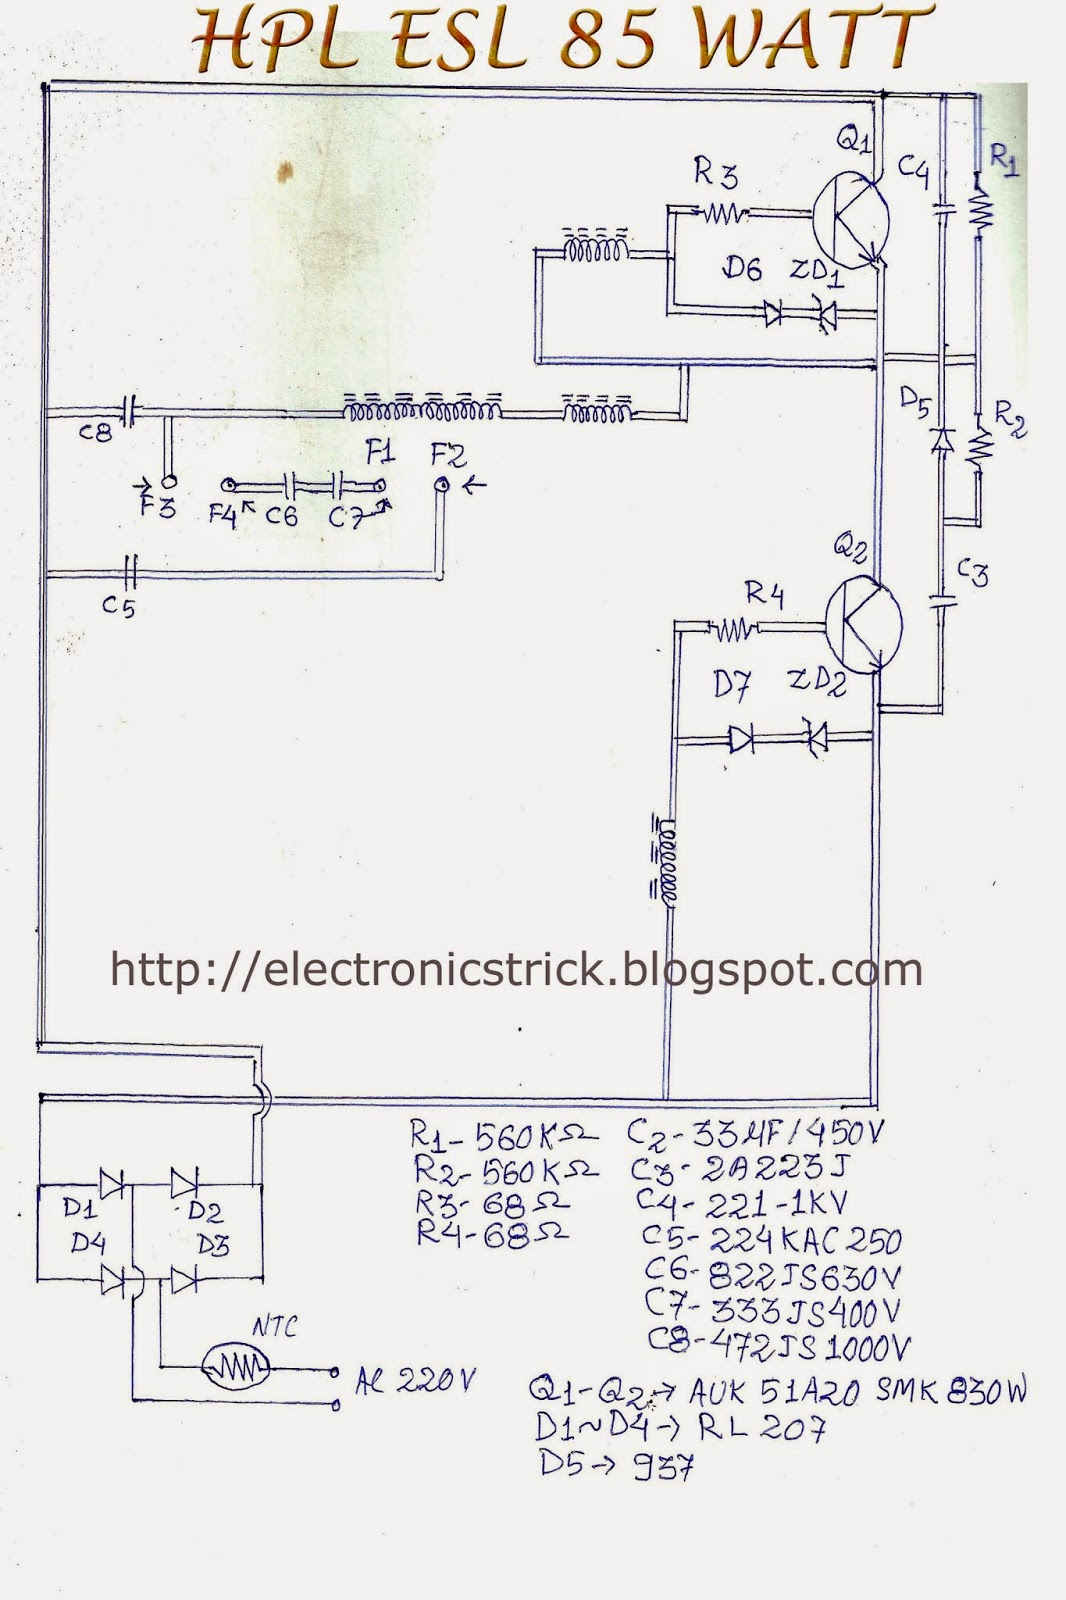 small resolution of hcl esl 85 watt cfl bulb ckt diagram tips and trick electronic another cfl bulb circuit diagram with details